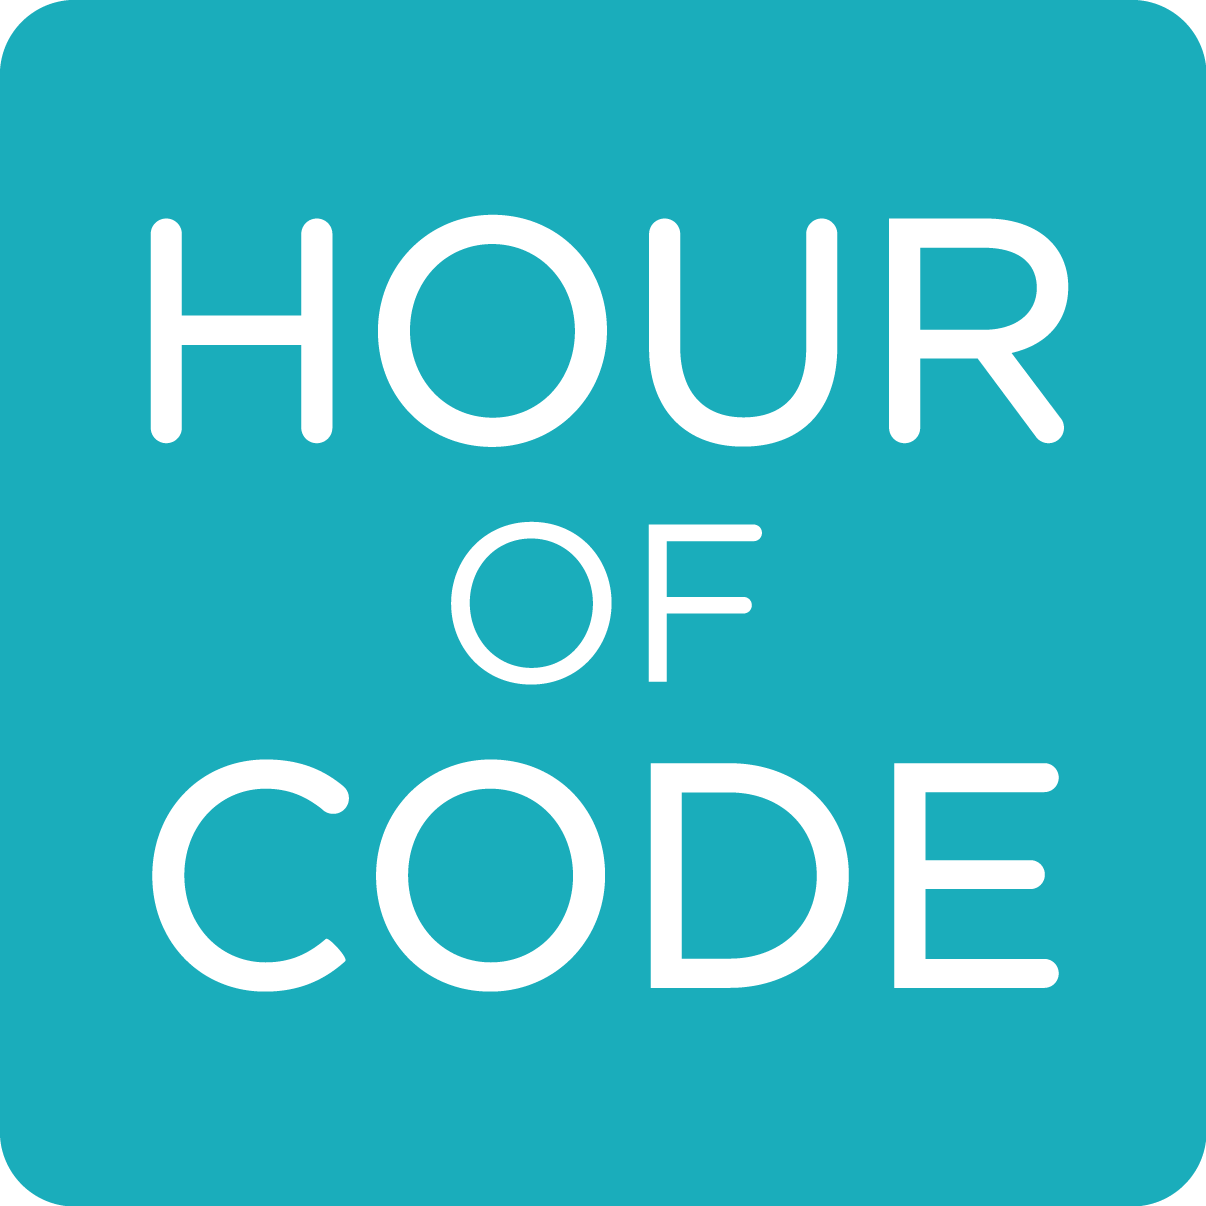 Computer Science Education Week - Hour of Code